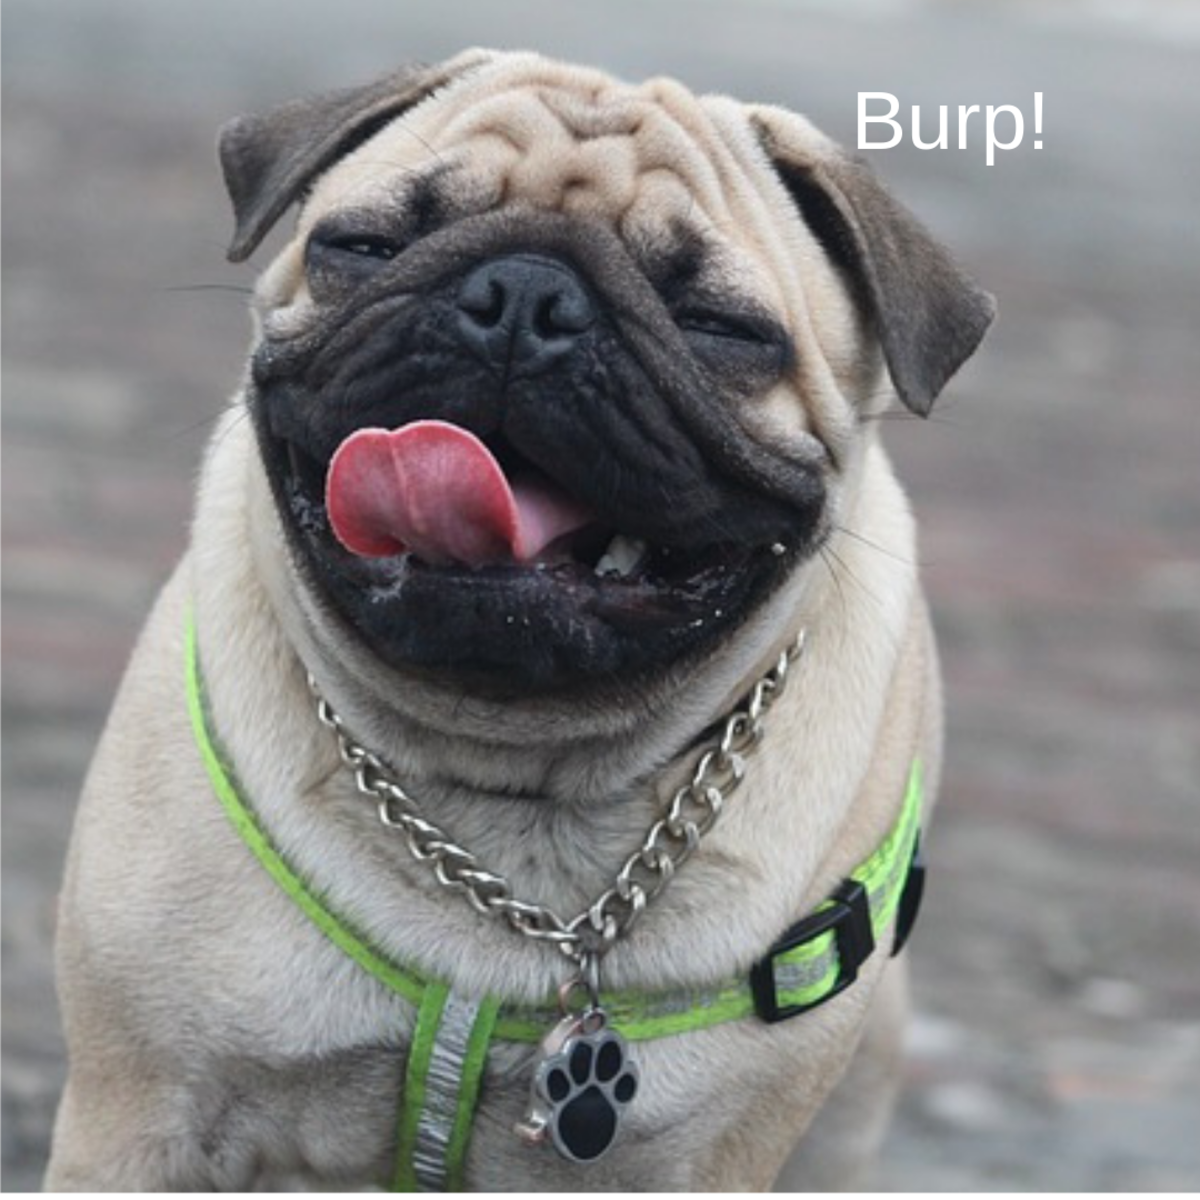 Some dog burps are simply the result of eating too fast.